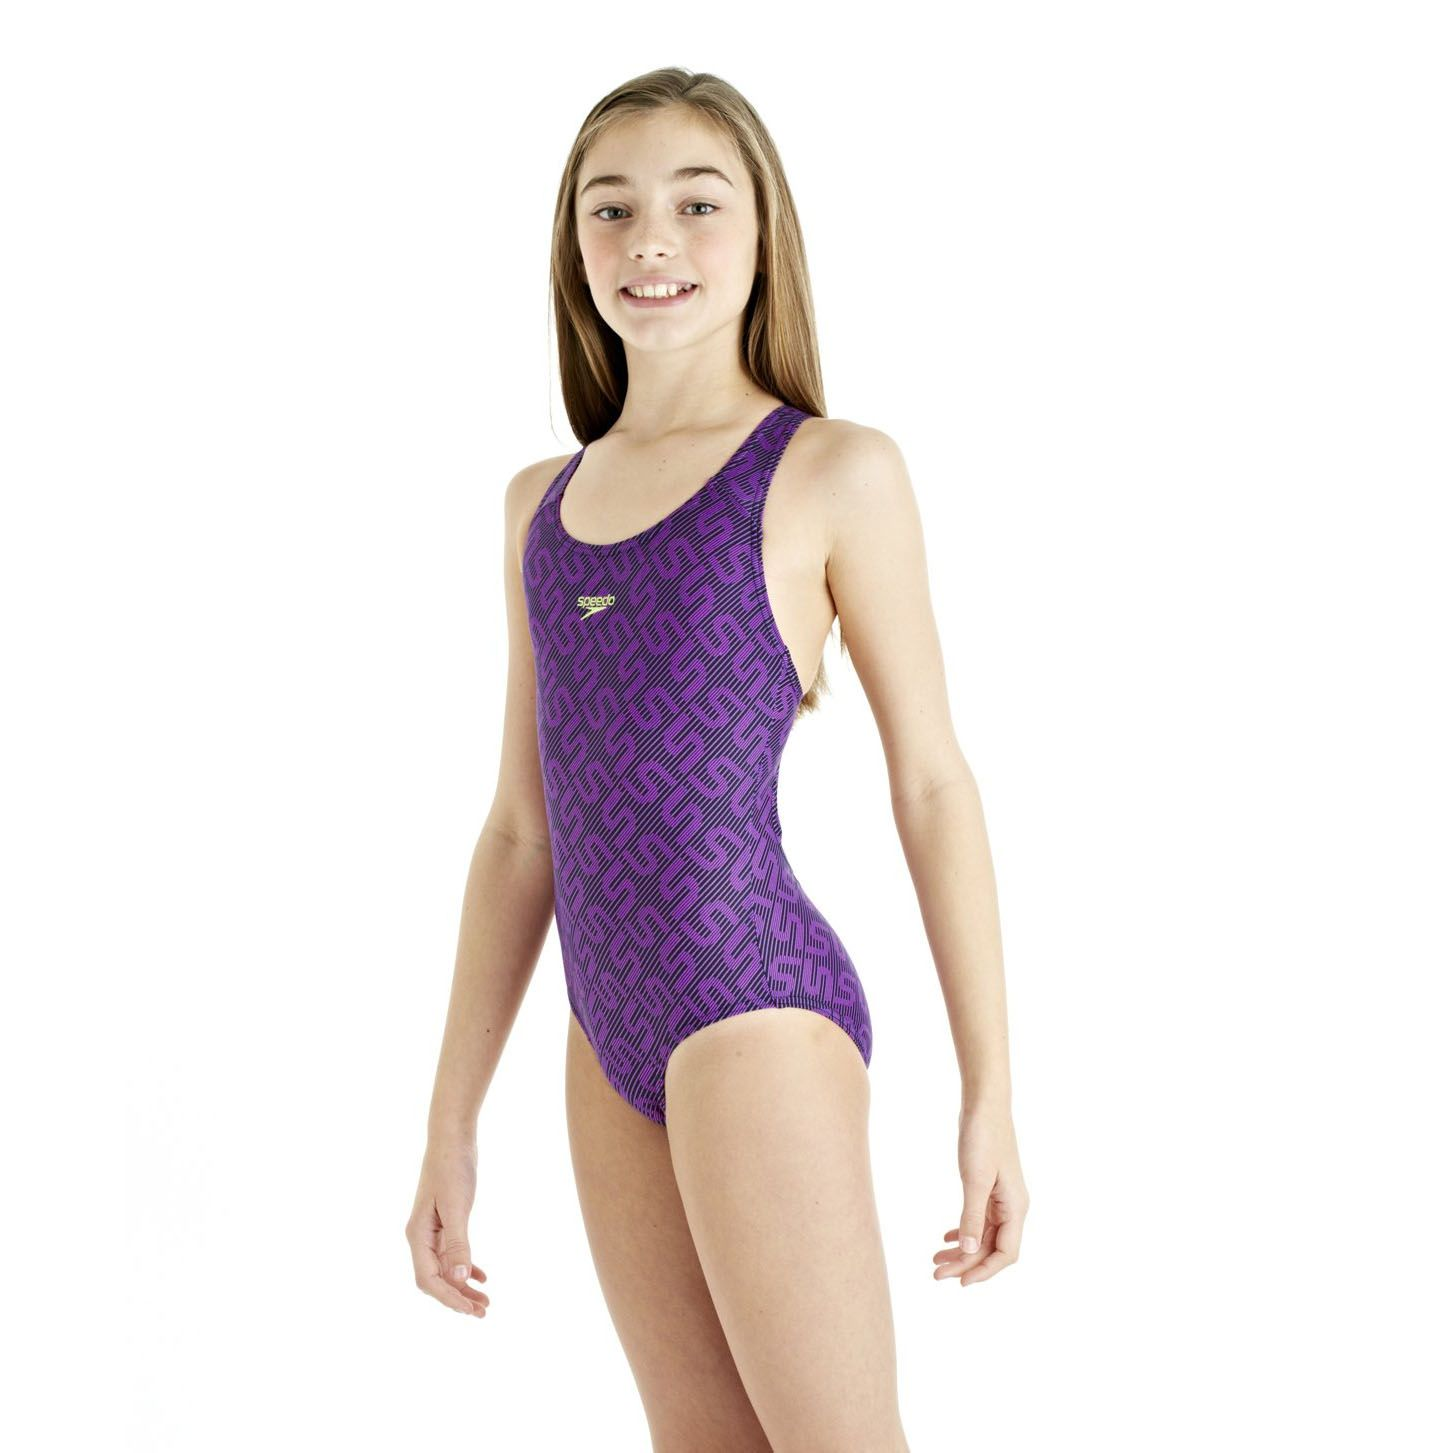 speedo monogram splashback girls swimsuit